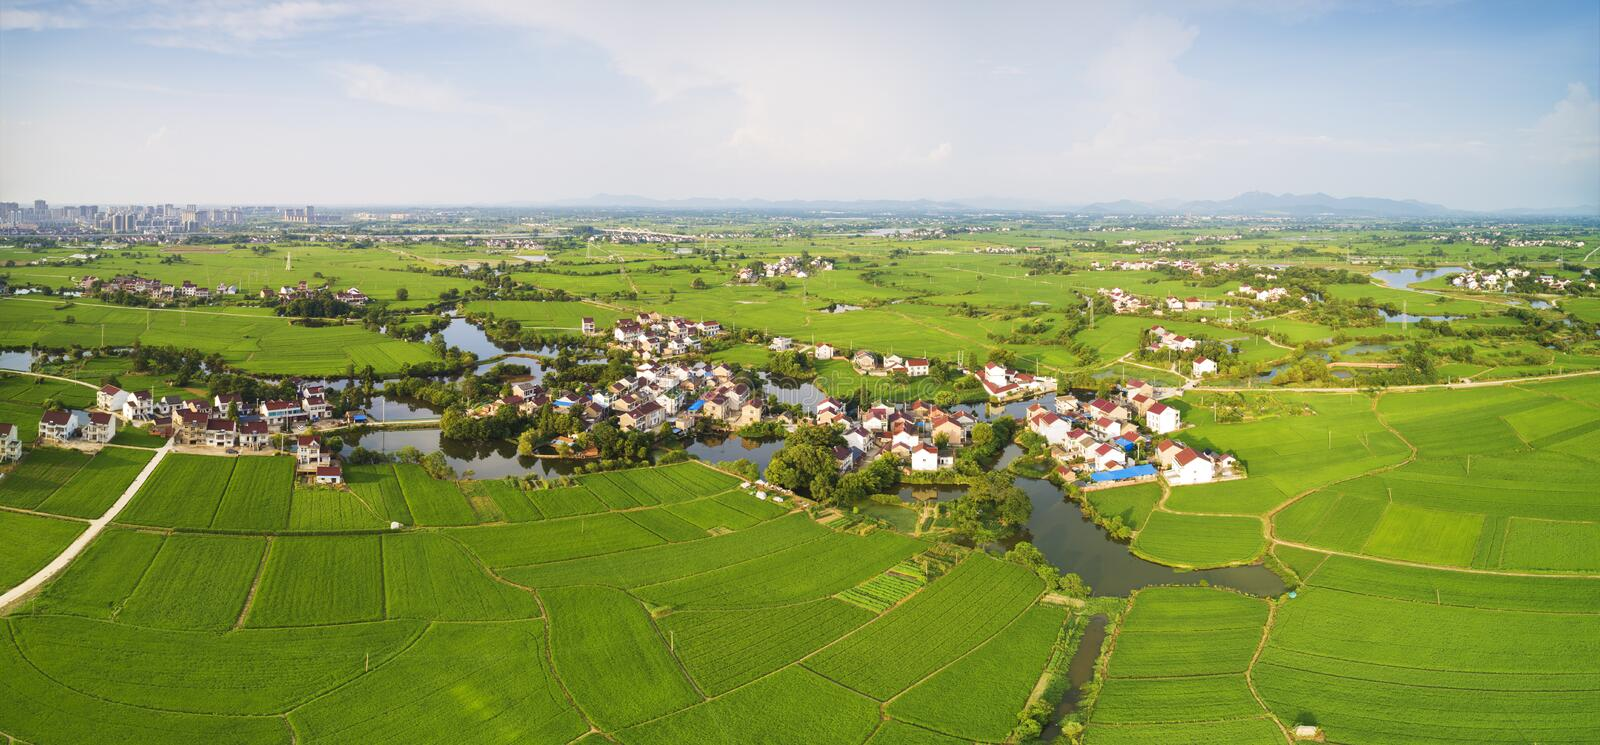 Aerial photo of summer rural ecological pastoral scenery in  xuancheng city, anhui province, China stock images